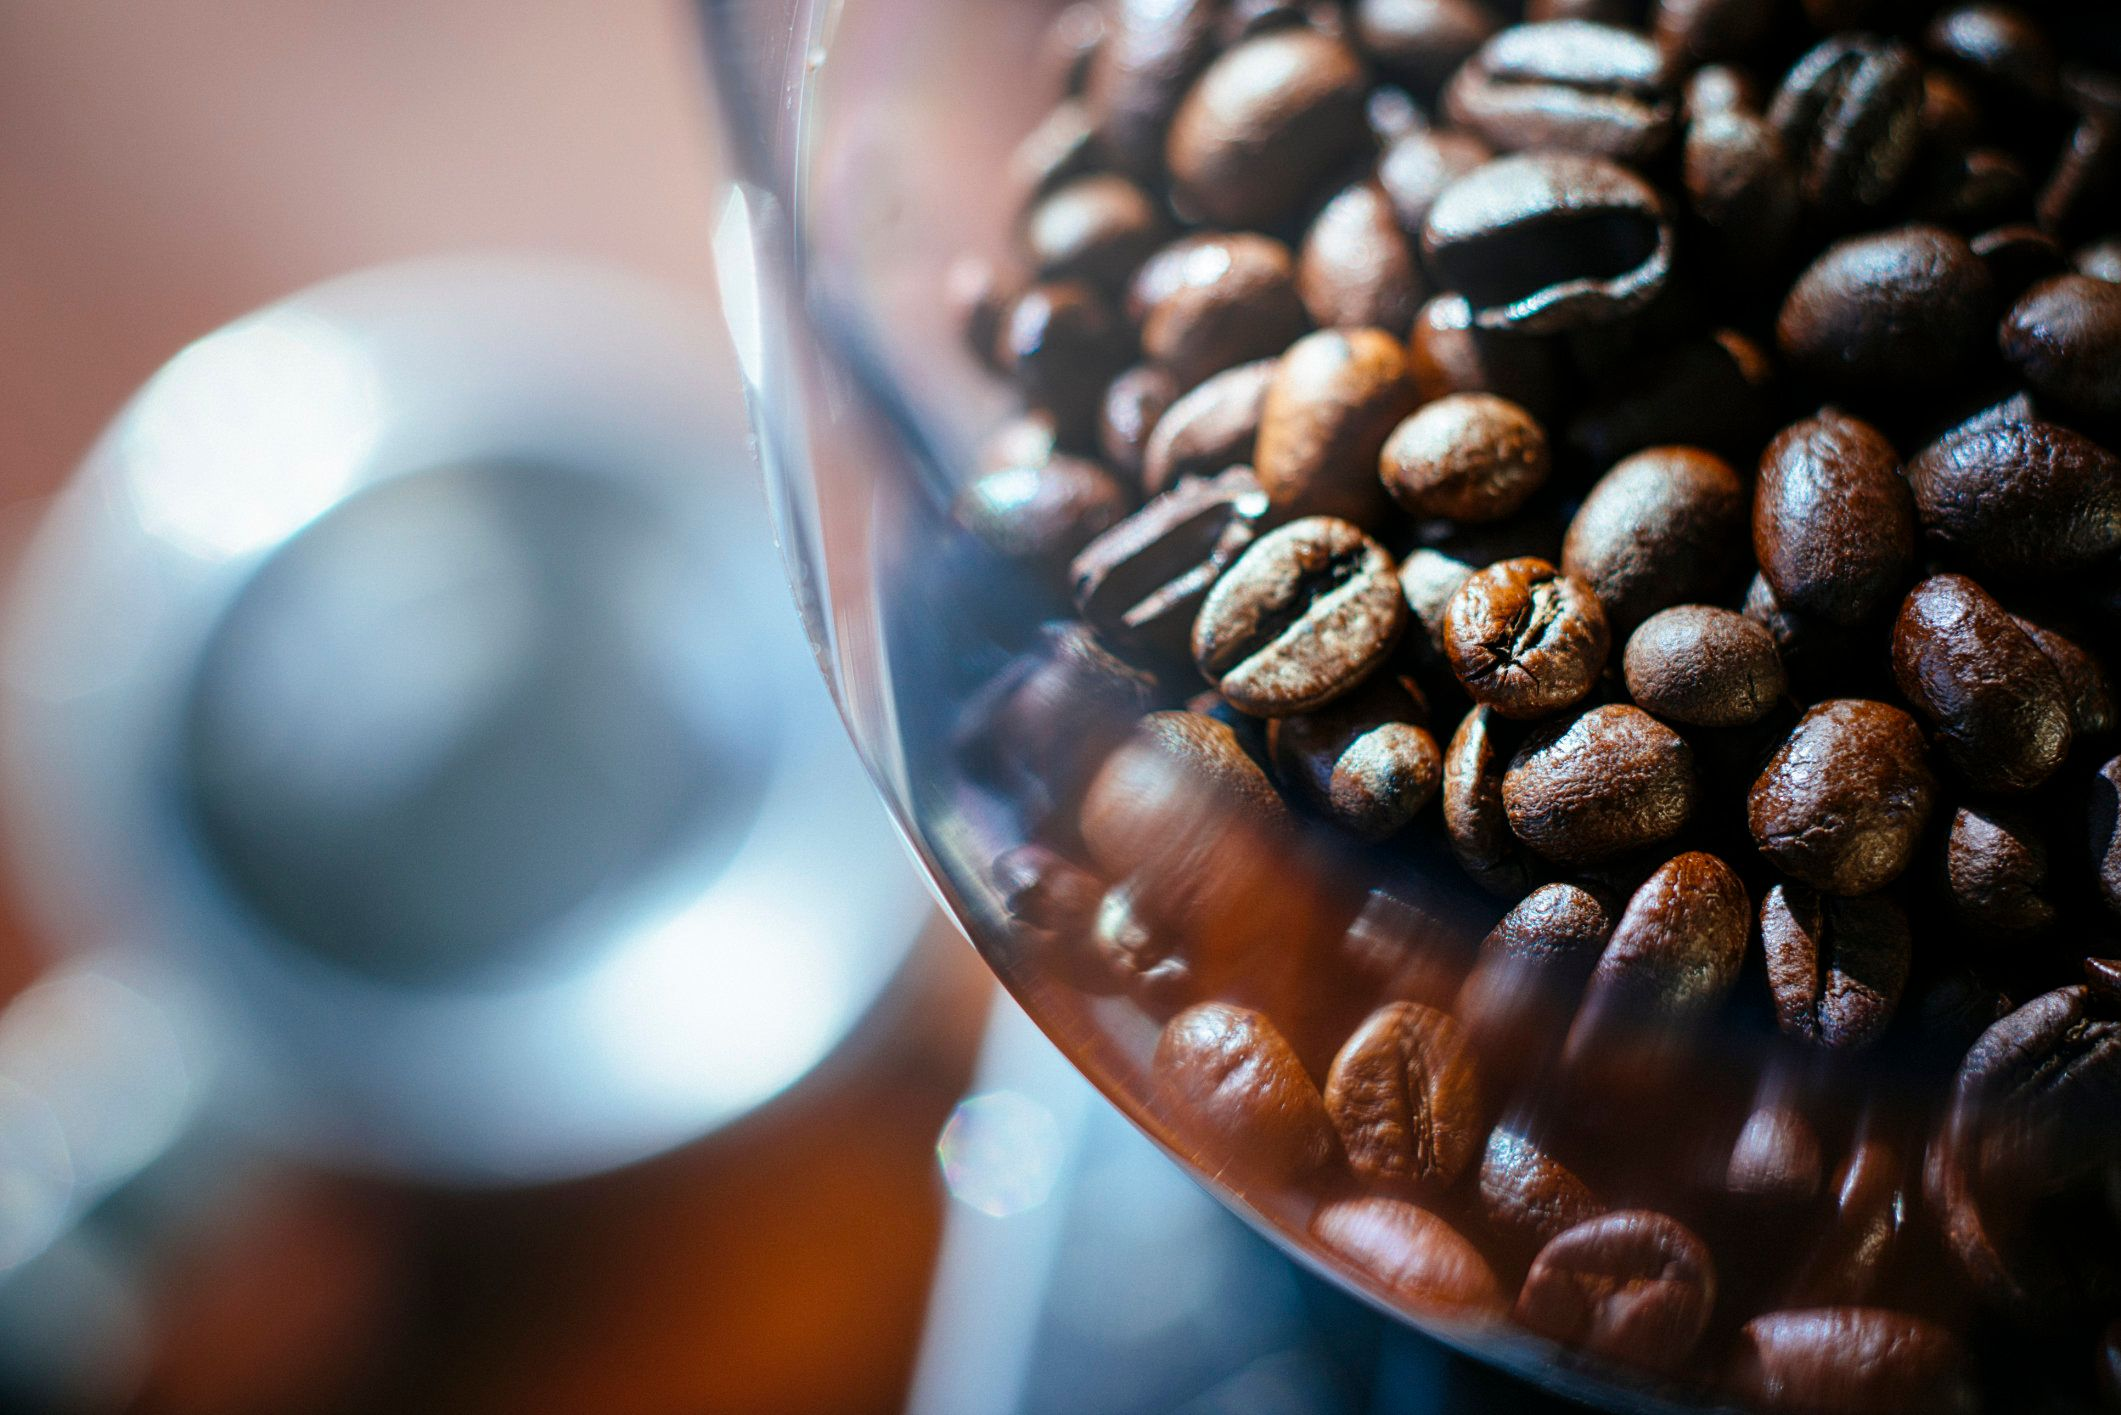 Fresh espresso beans in a coffee grinder with a support in the background.